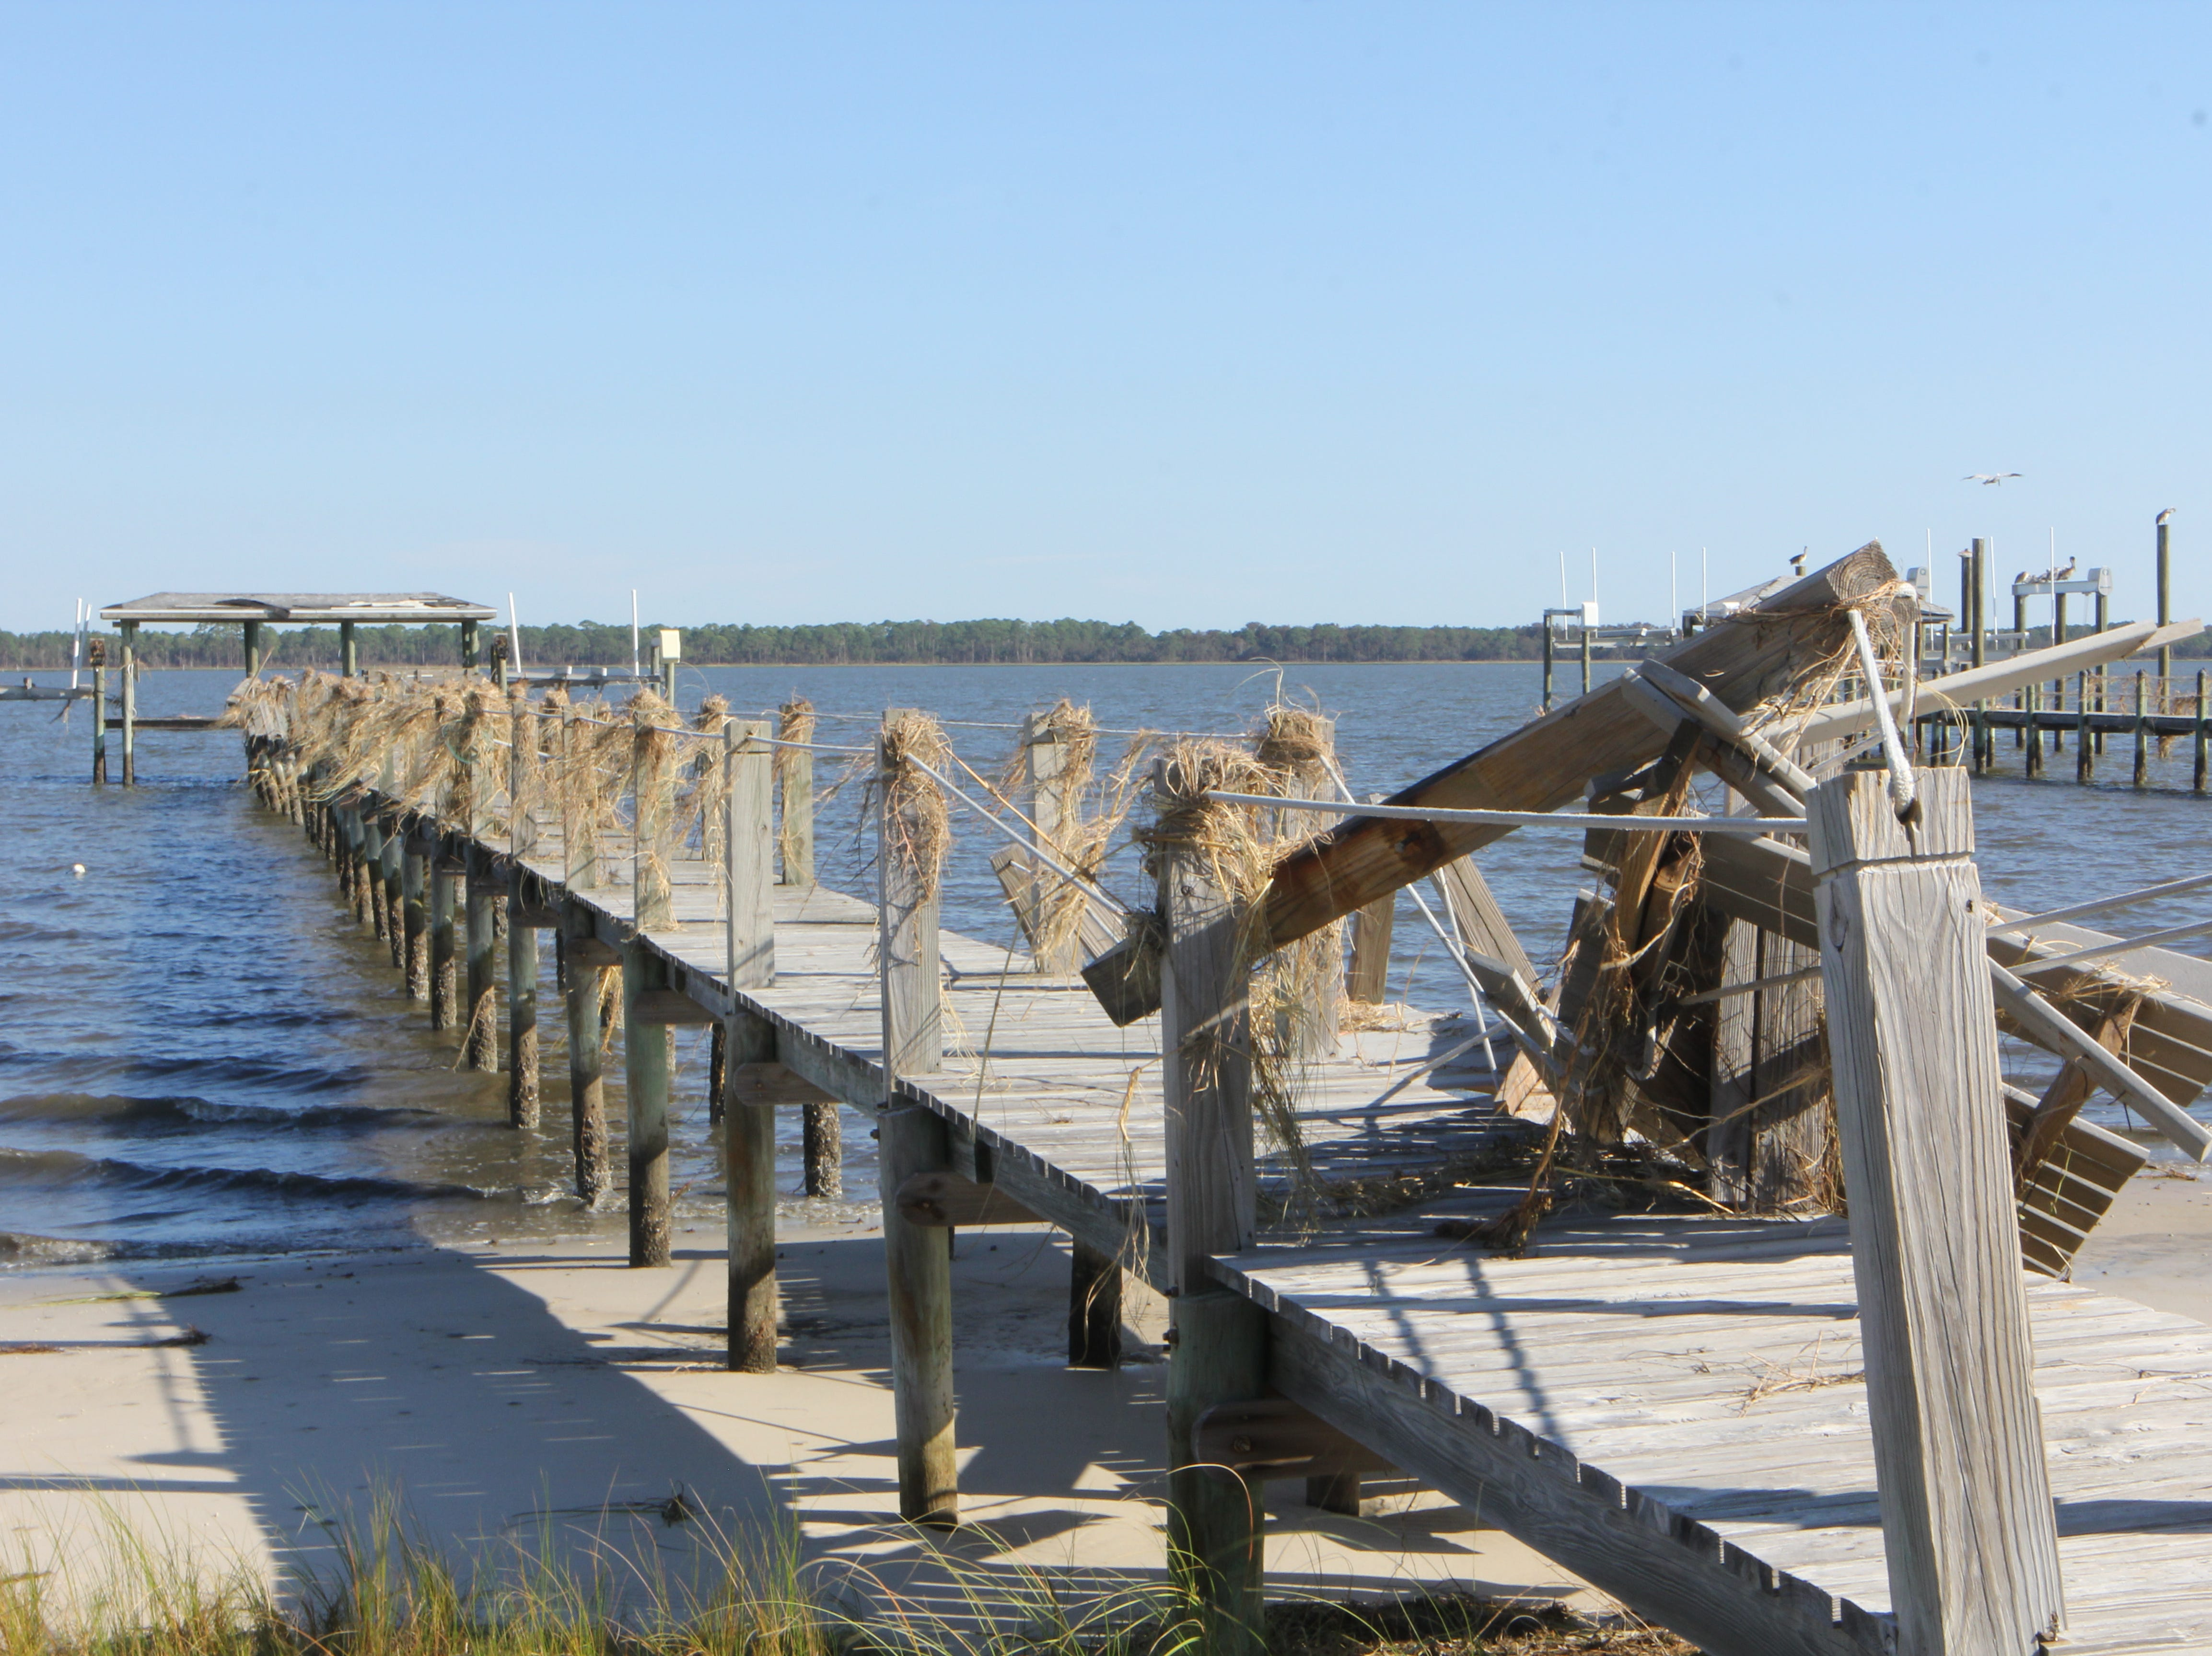 Sea grass clings to a damaged dock on Alligator Point after Hurricane Michael.